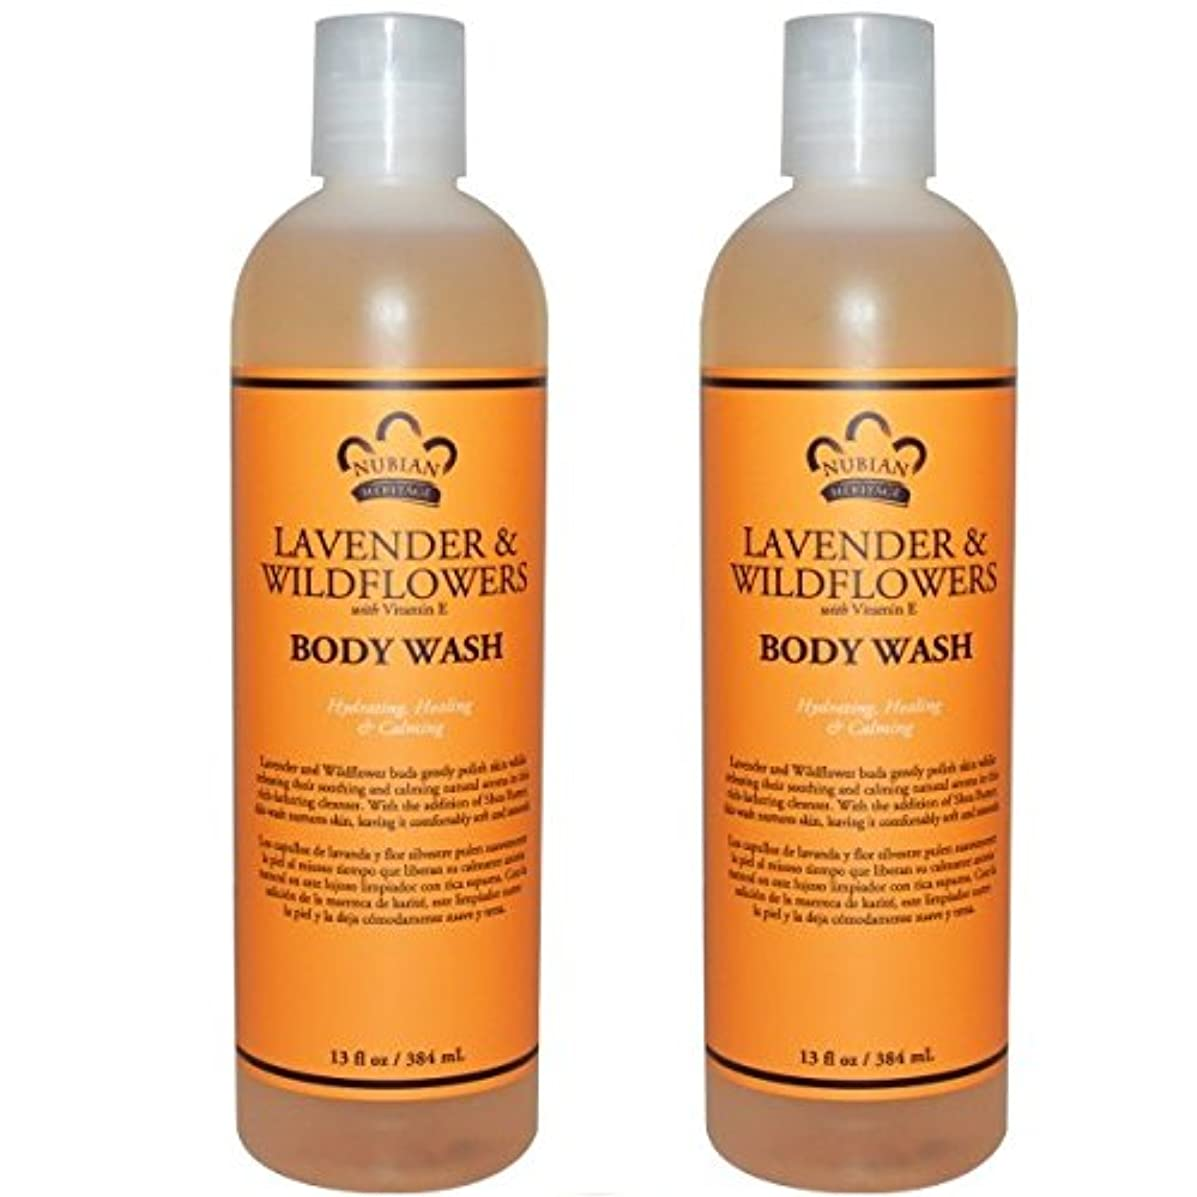 【海外直送品】【2本】Nubian Heritage Body Wash Relaxing & Nourishing, Lavender & Wildflowers - 13 fl oz (384 ml)